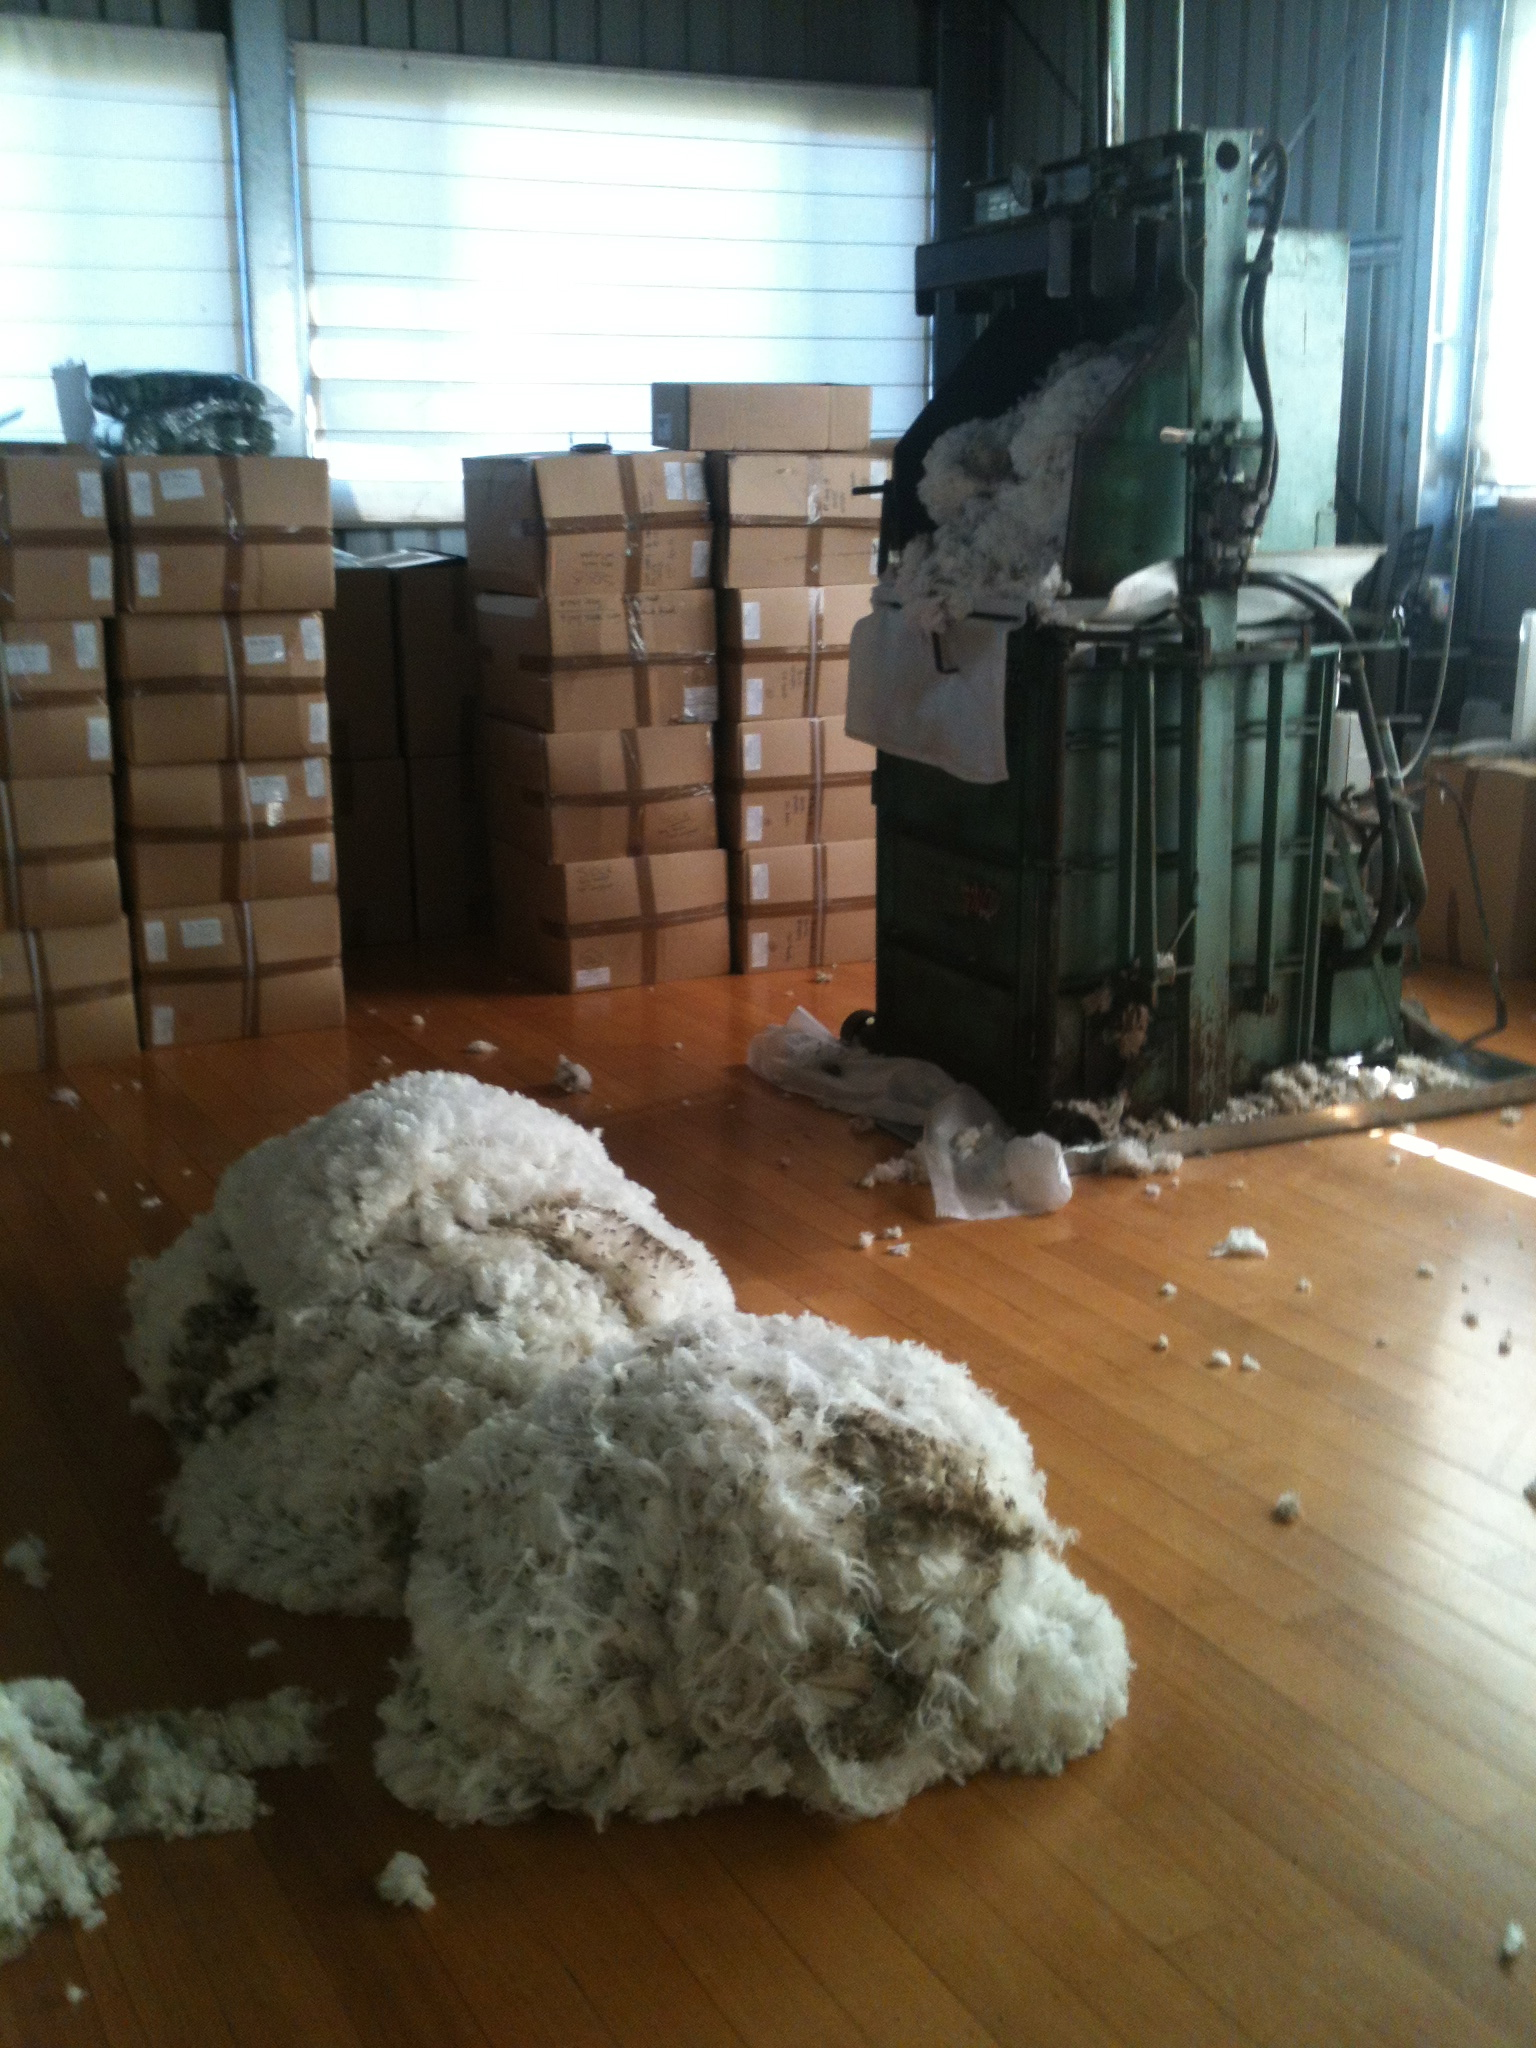 Ewe fleeces ready to go into the press, with boxes of yarn from last year's clip in the background.